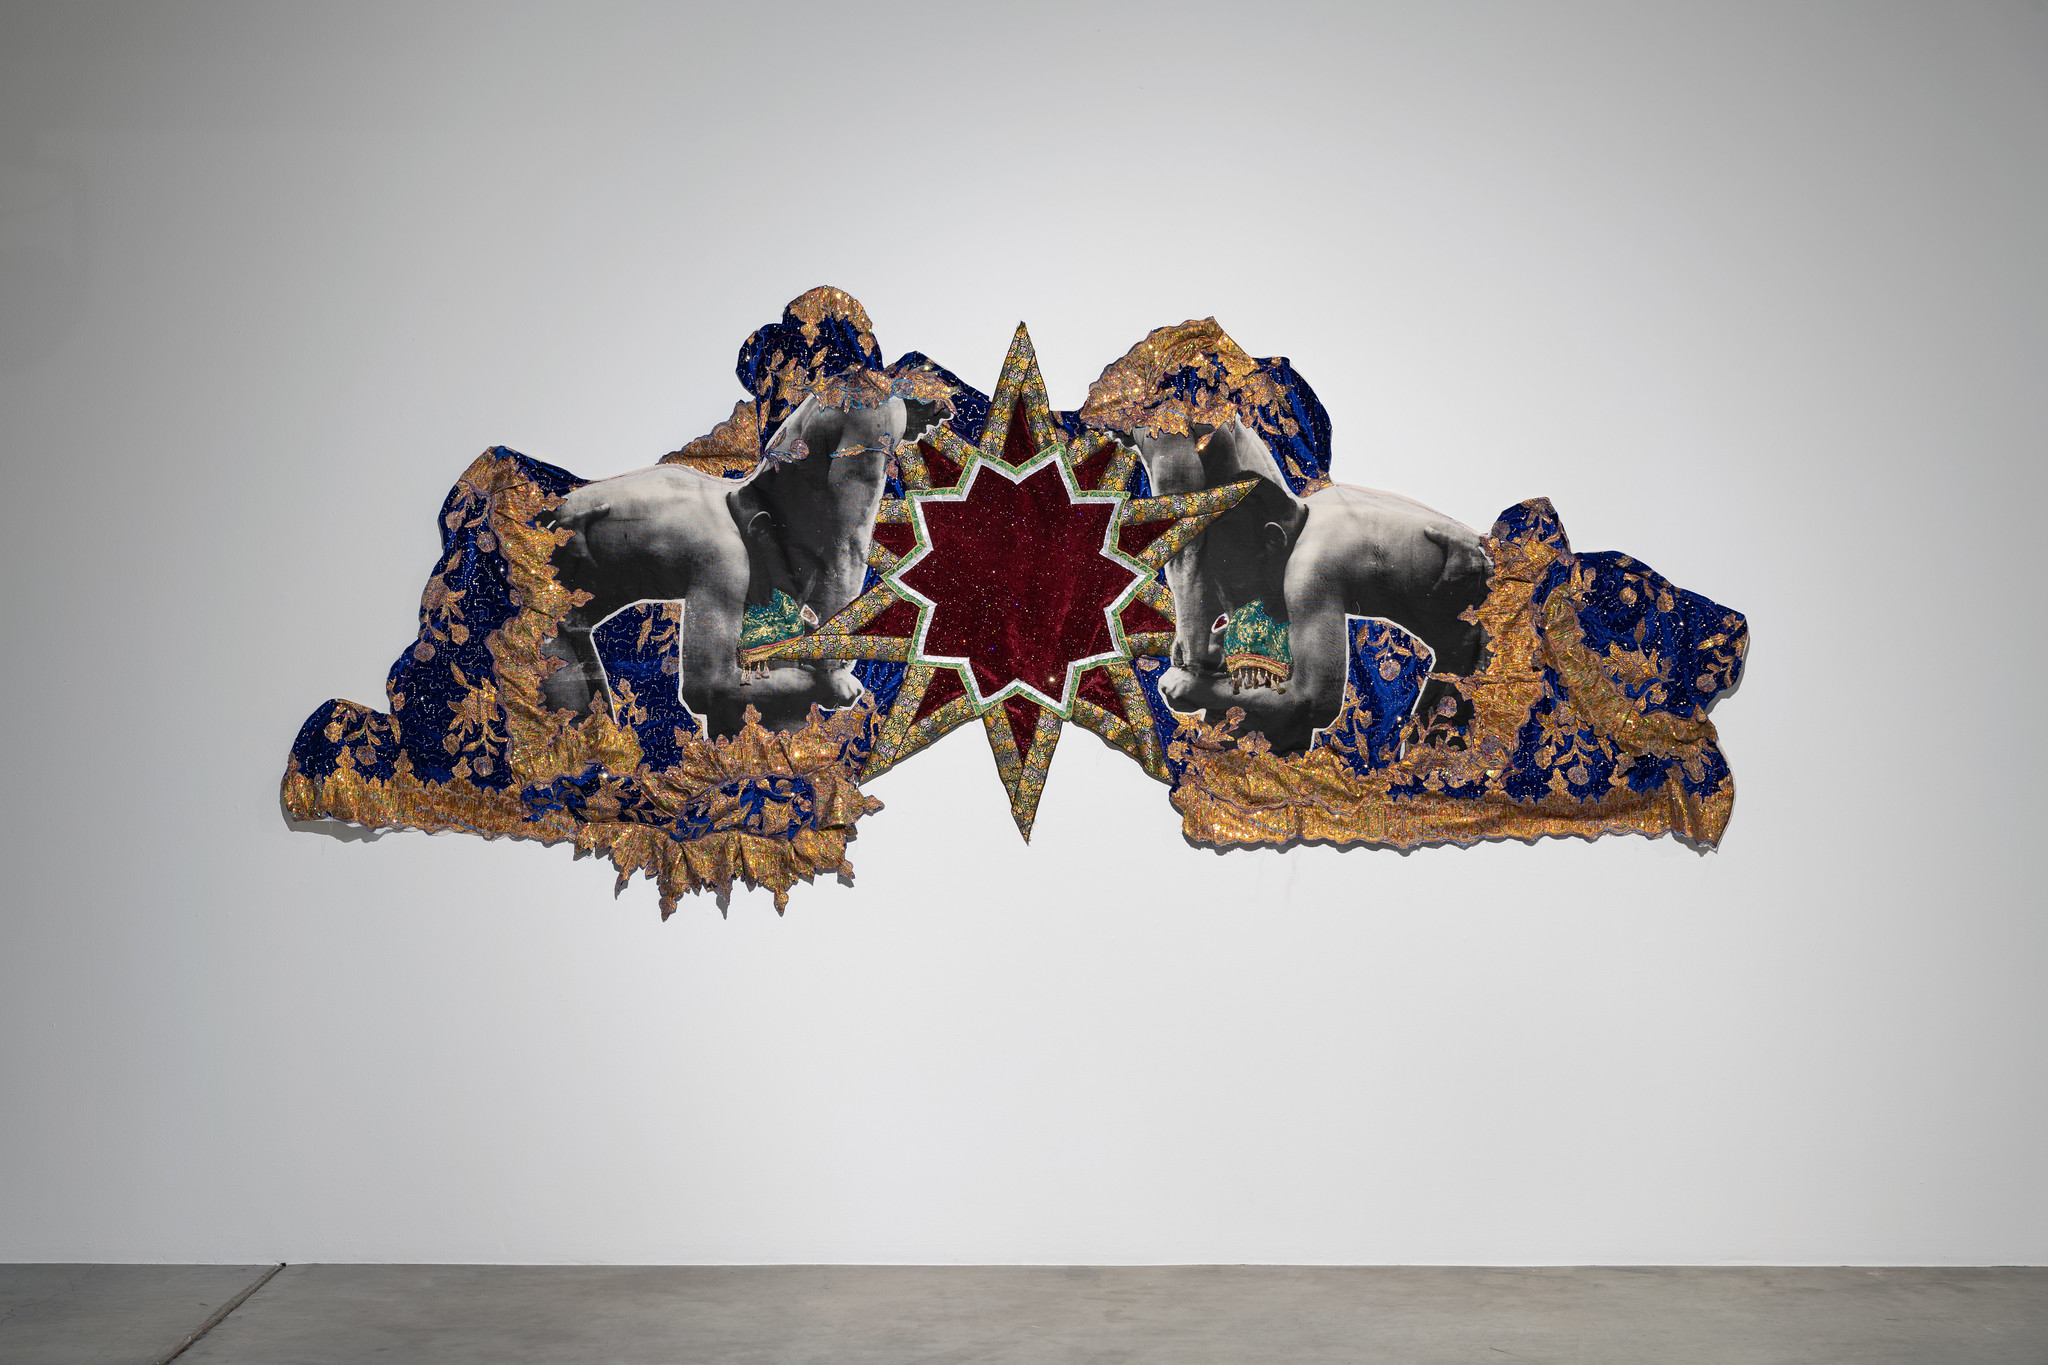 Modern Attack جدید حملہ by Zulfikar Ali Bhutto. Screen print on muslin, red and blue velvet fabric, green imitation silk with various trimming and tassels, 2020, 120 x 60 inches